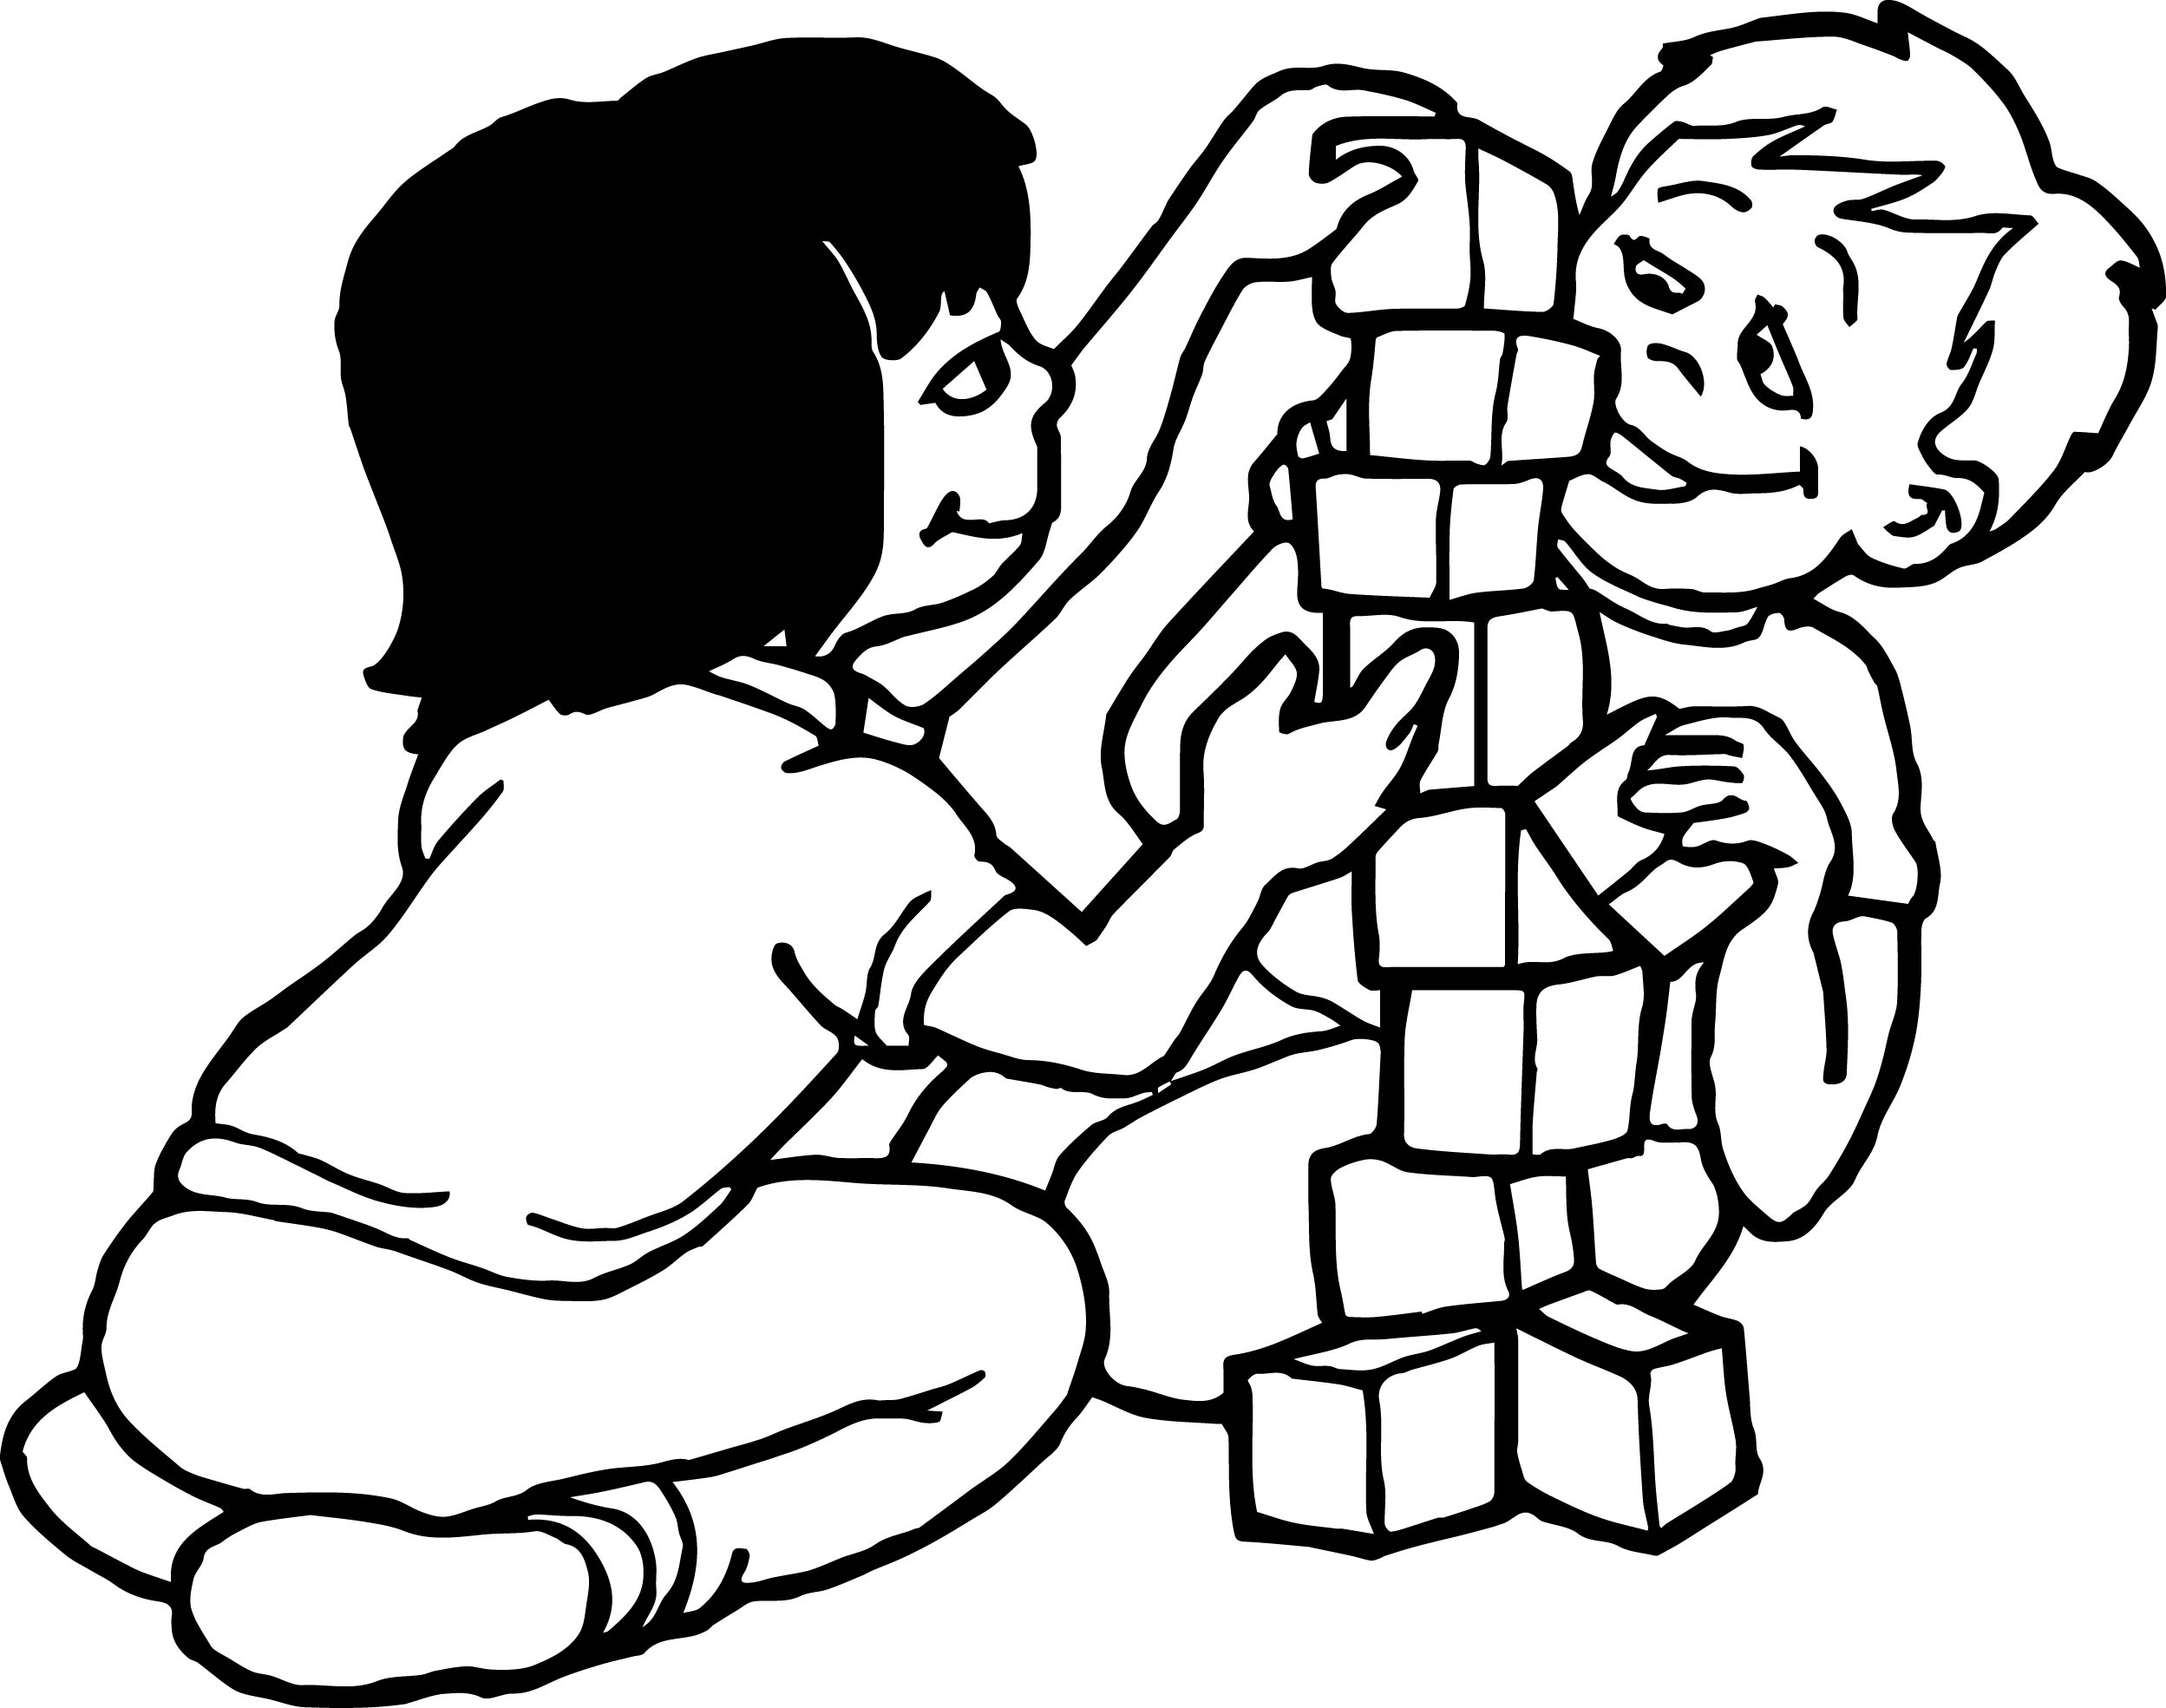 Playing Children Activity Coloring Page